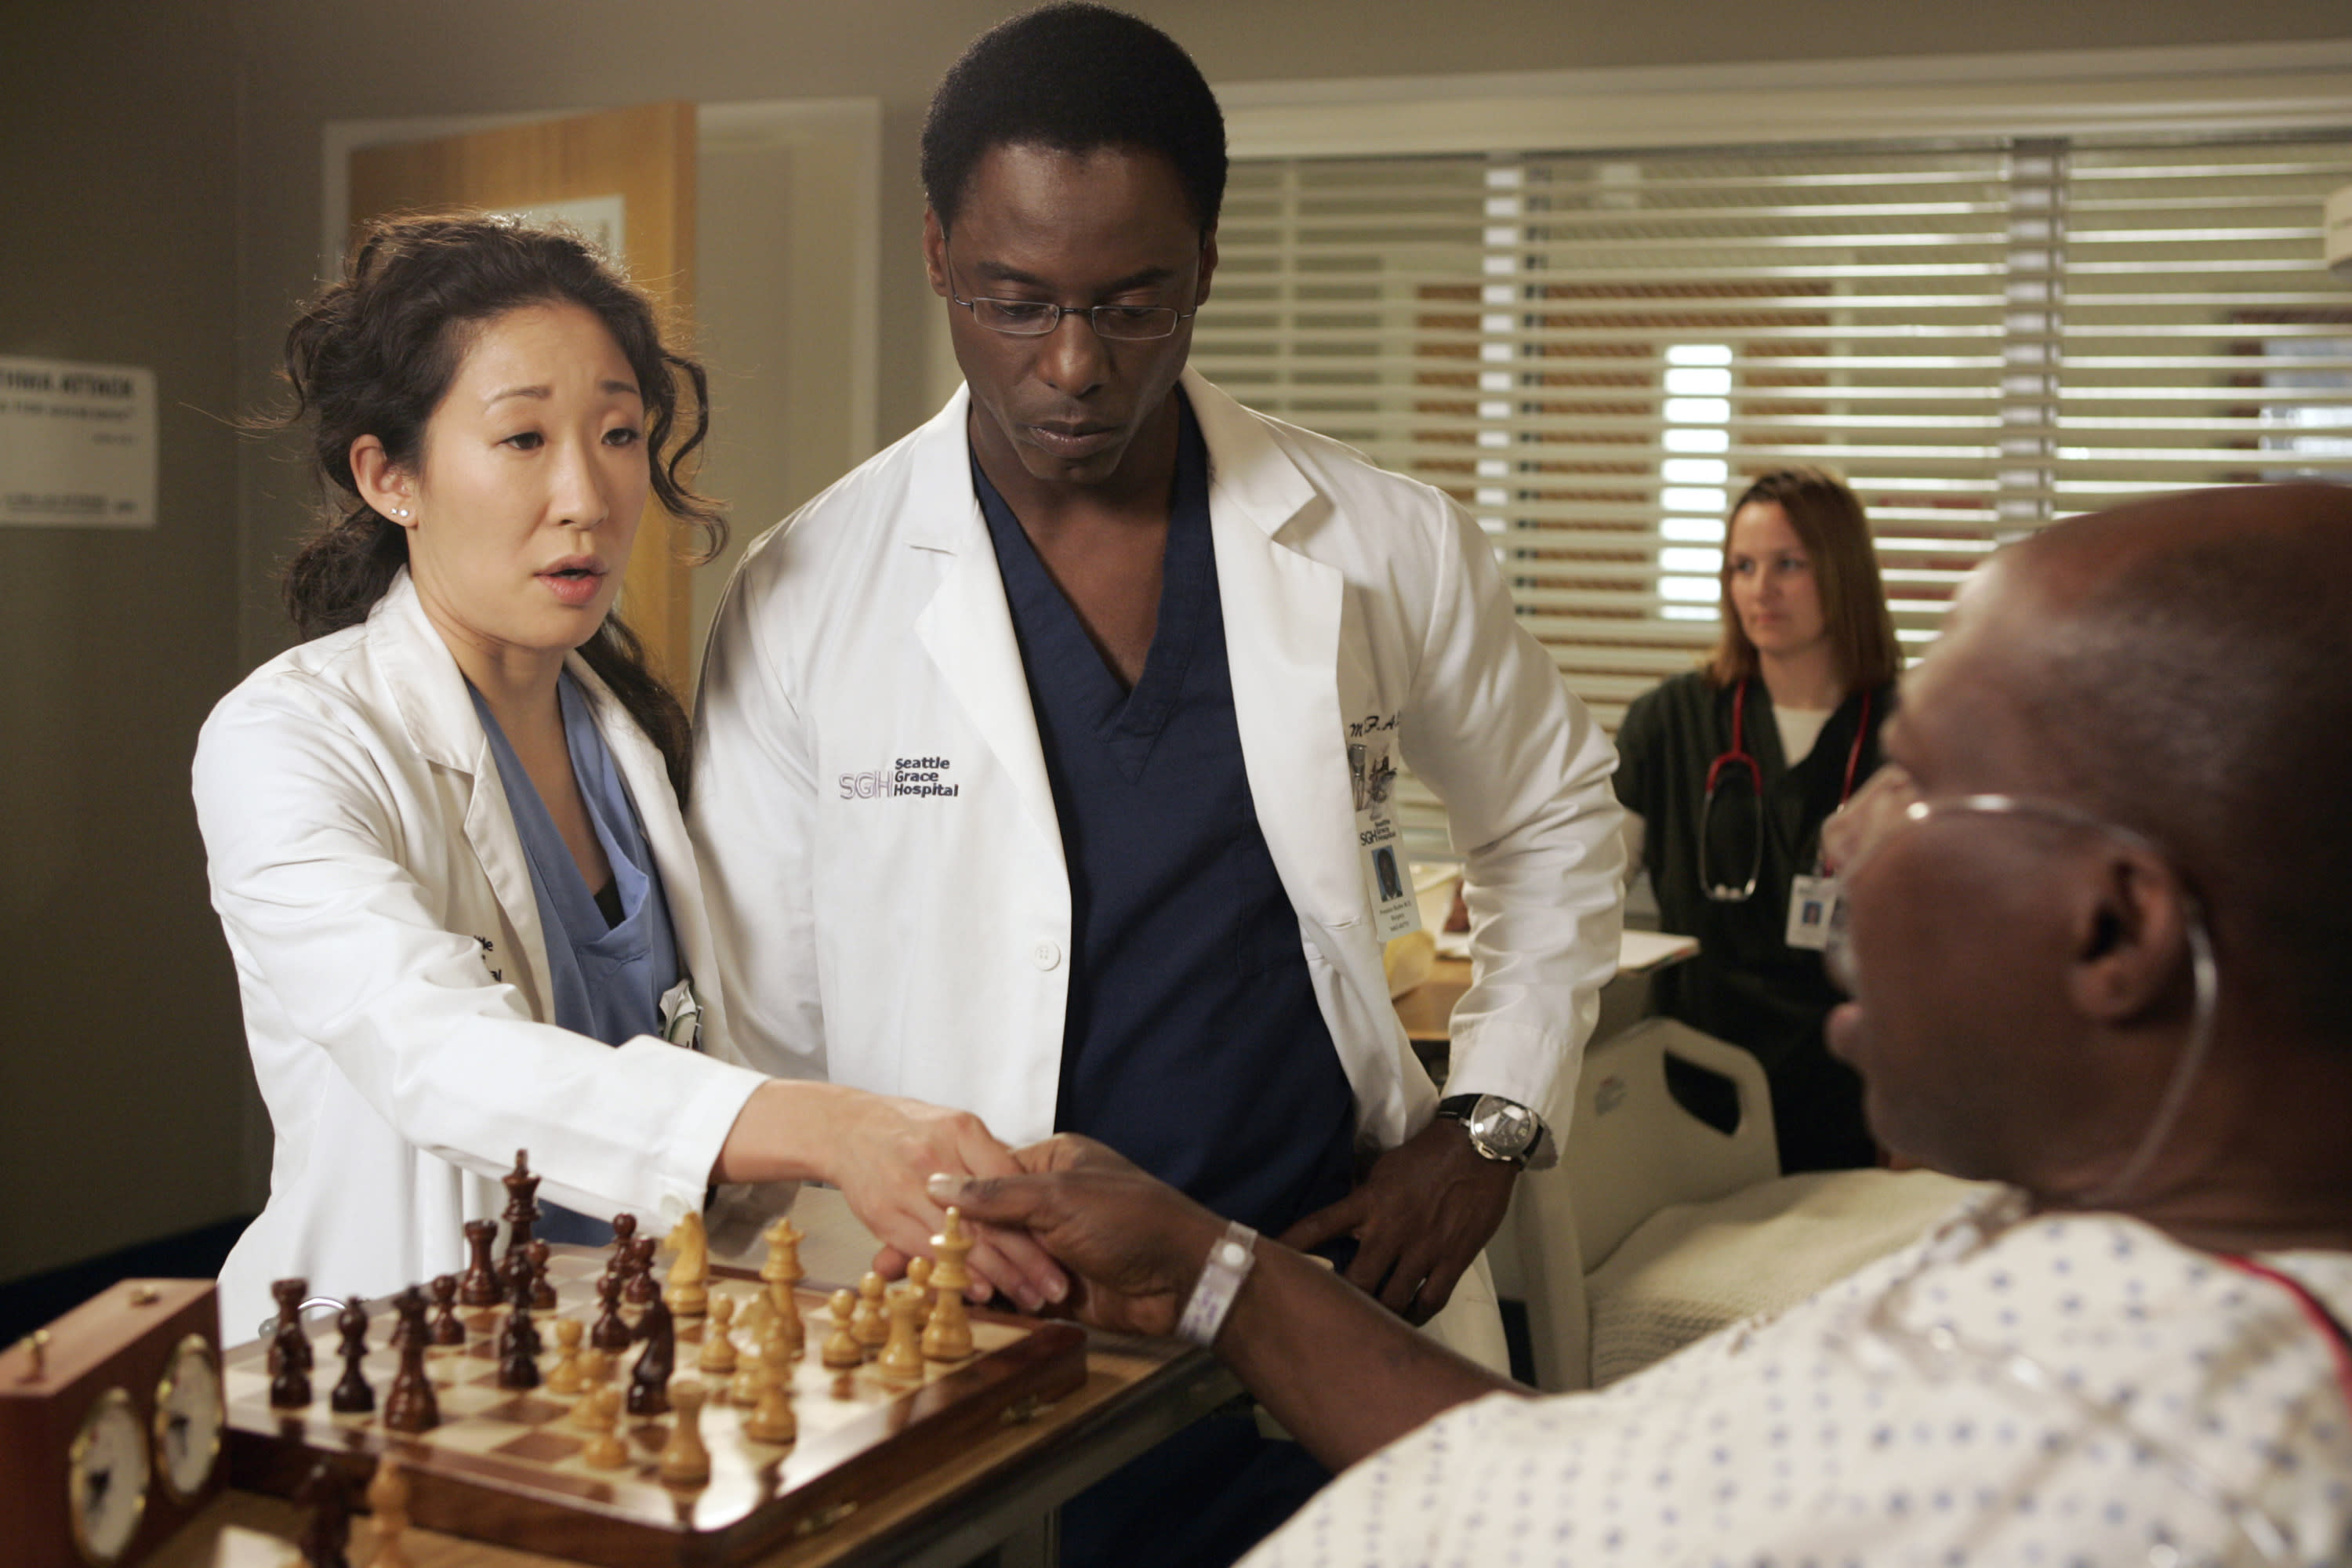 """Isaiah Washington and Sandra Oh on the set of """"Grey's Anatomy"""" in 2007. (Photo: Getty Images)"""